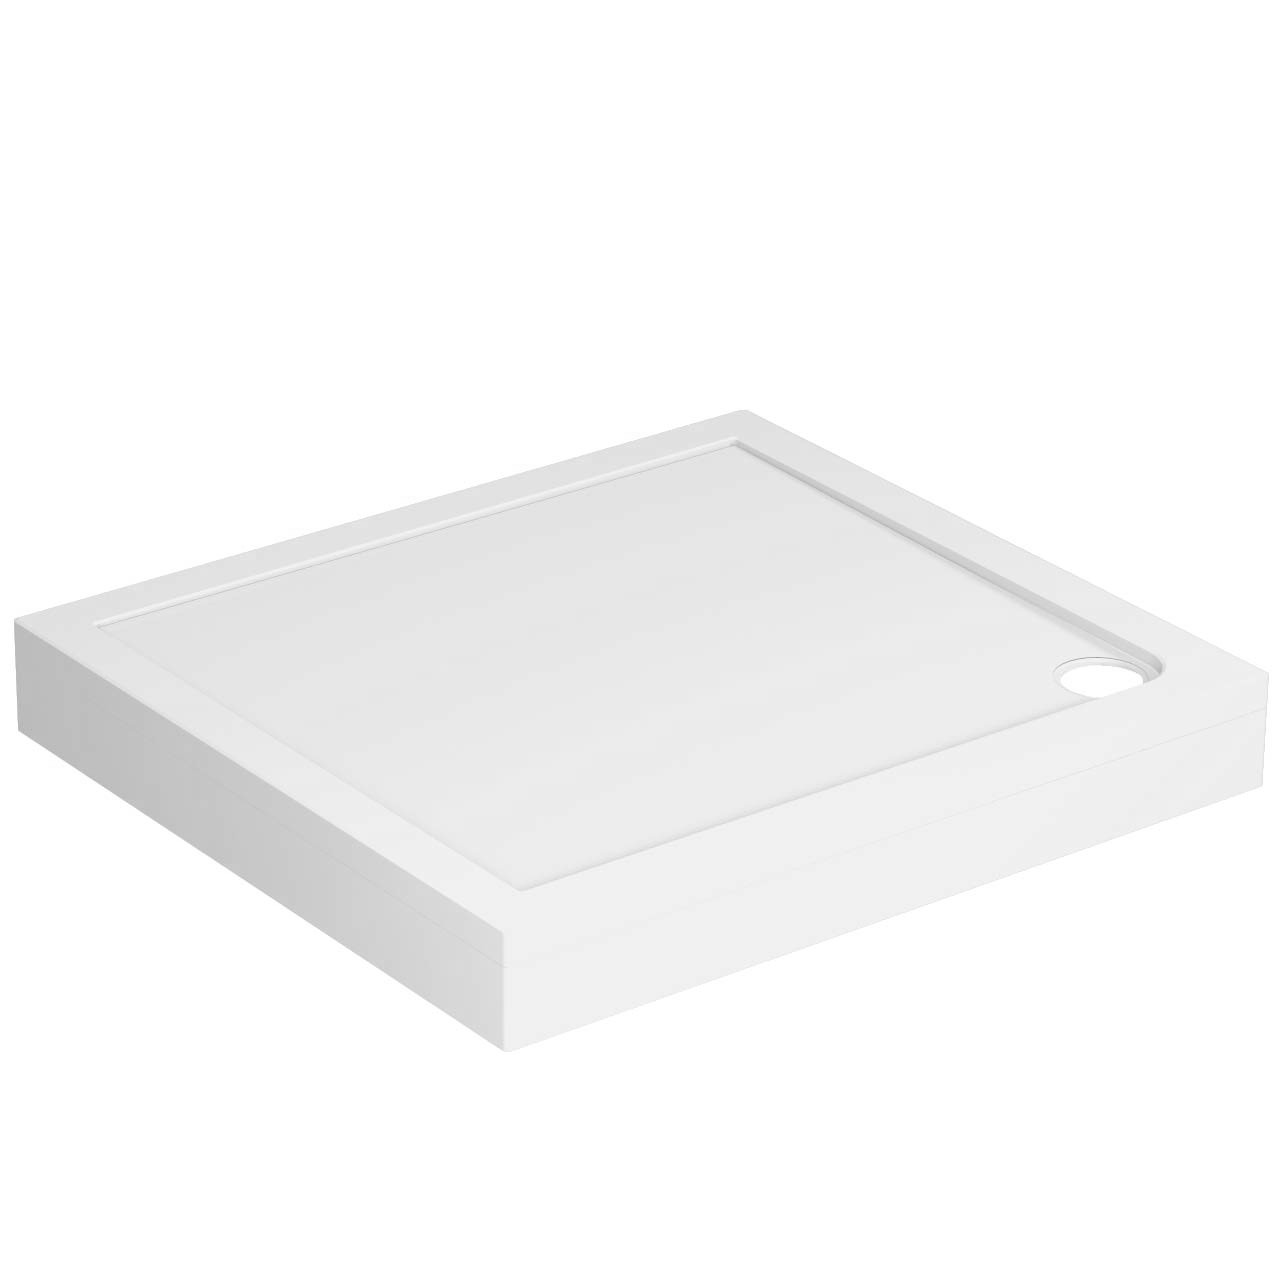 40mm Pearlstone 1000 x 900 Rectangular Shower Tray & Plinth